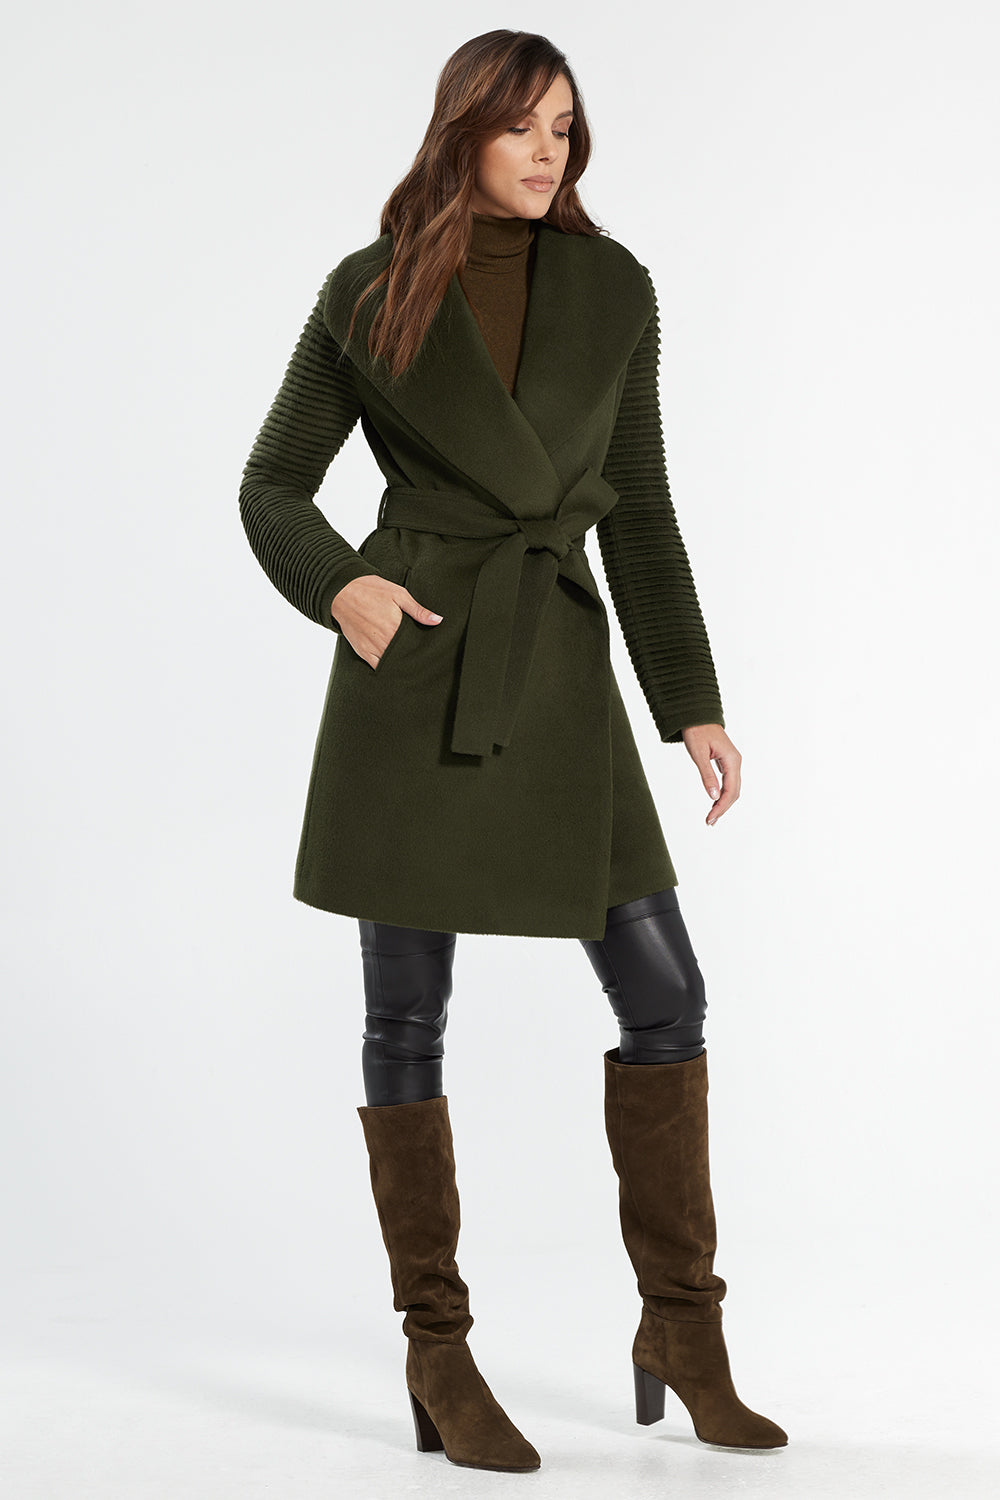 Sentaler Mid Length Shawl Collar Wrap Coat with Ribbed Sleeves featured in Baby Alpaca and available in Olive. Seen from side